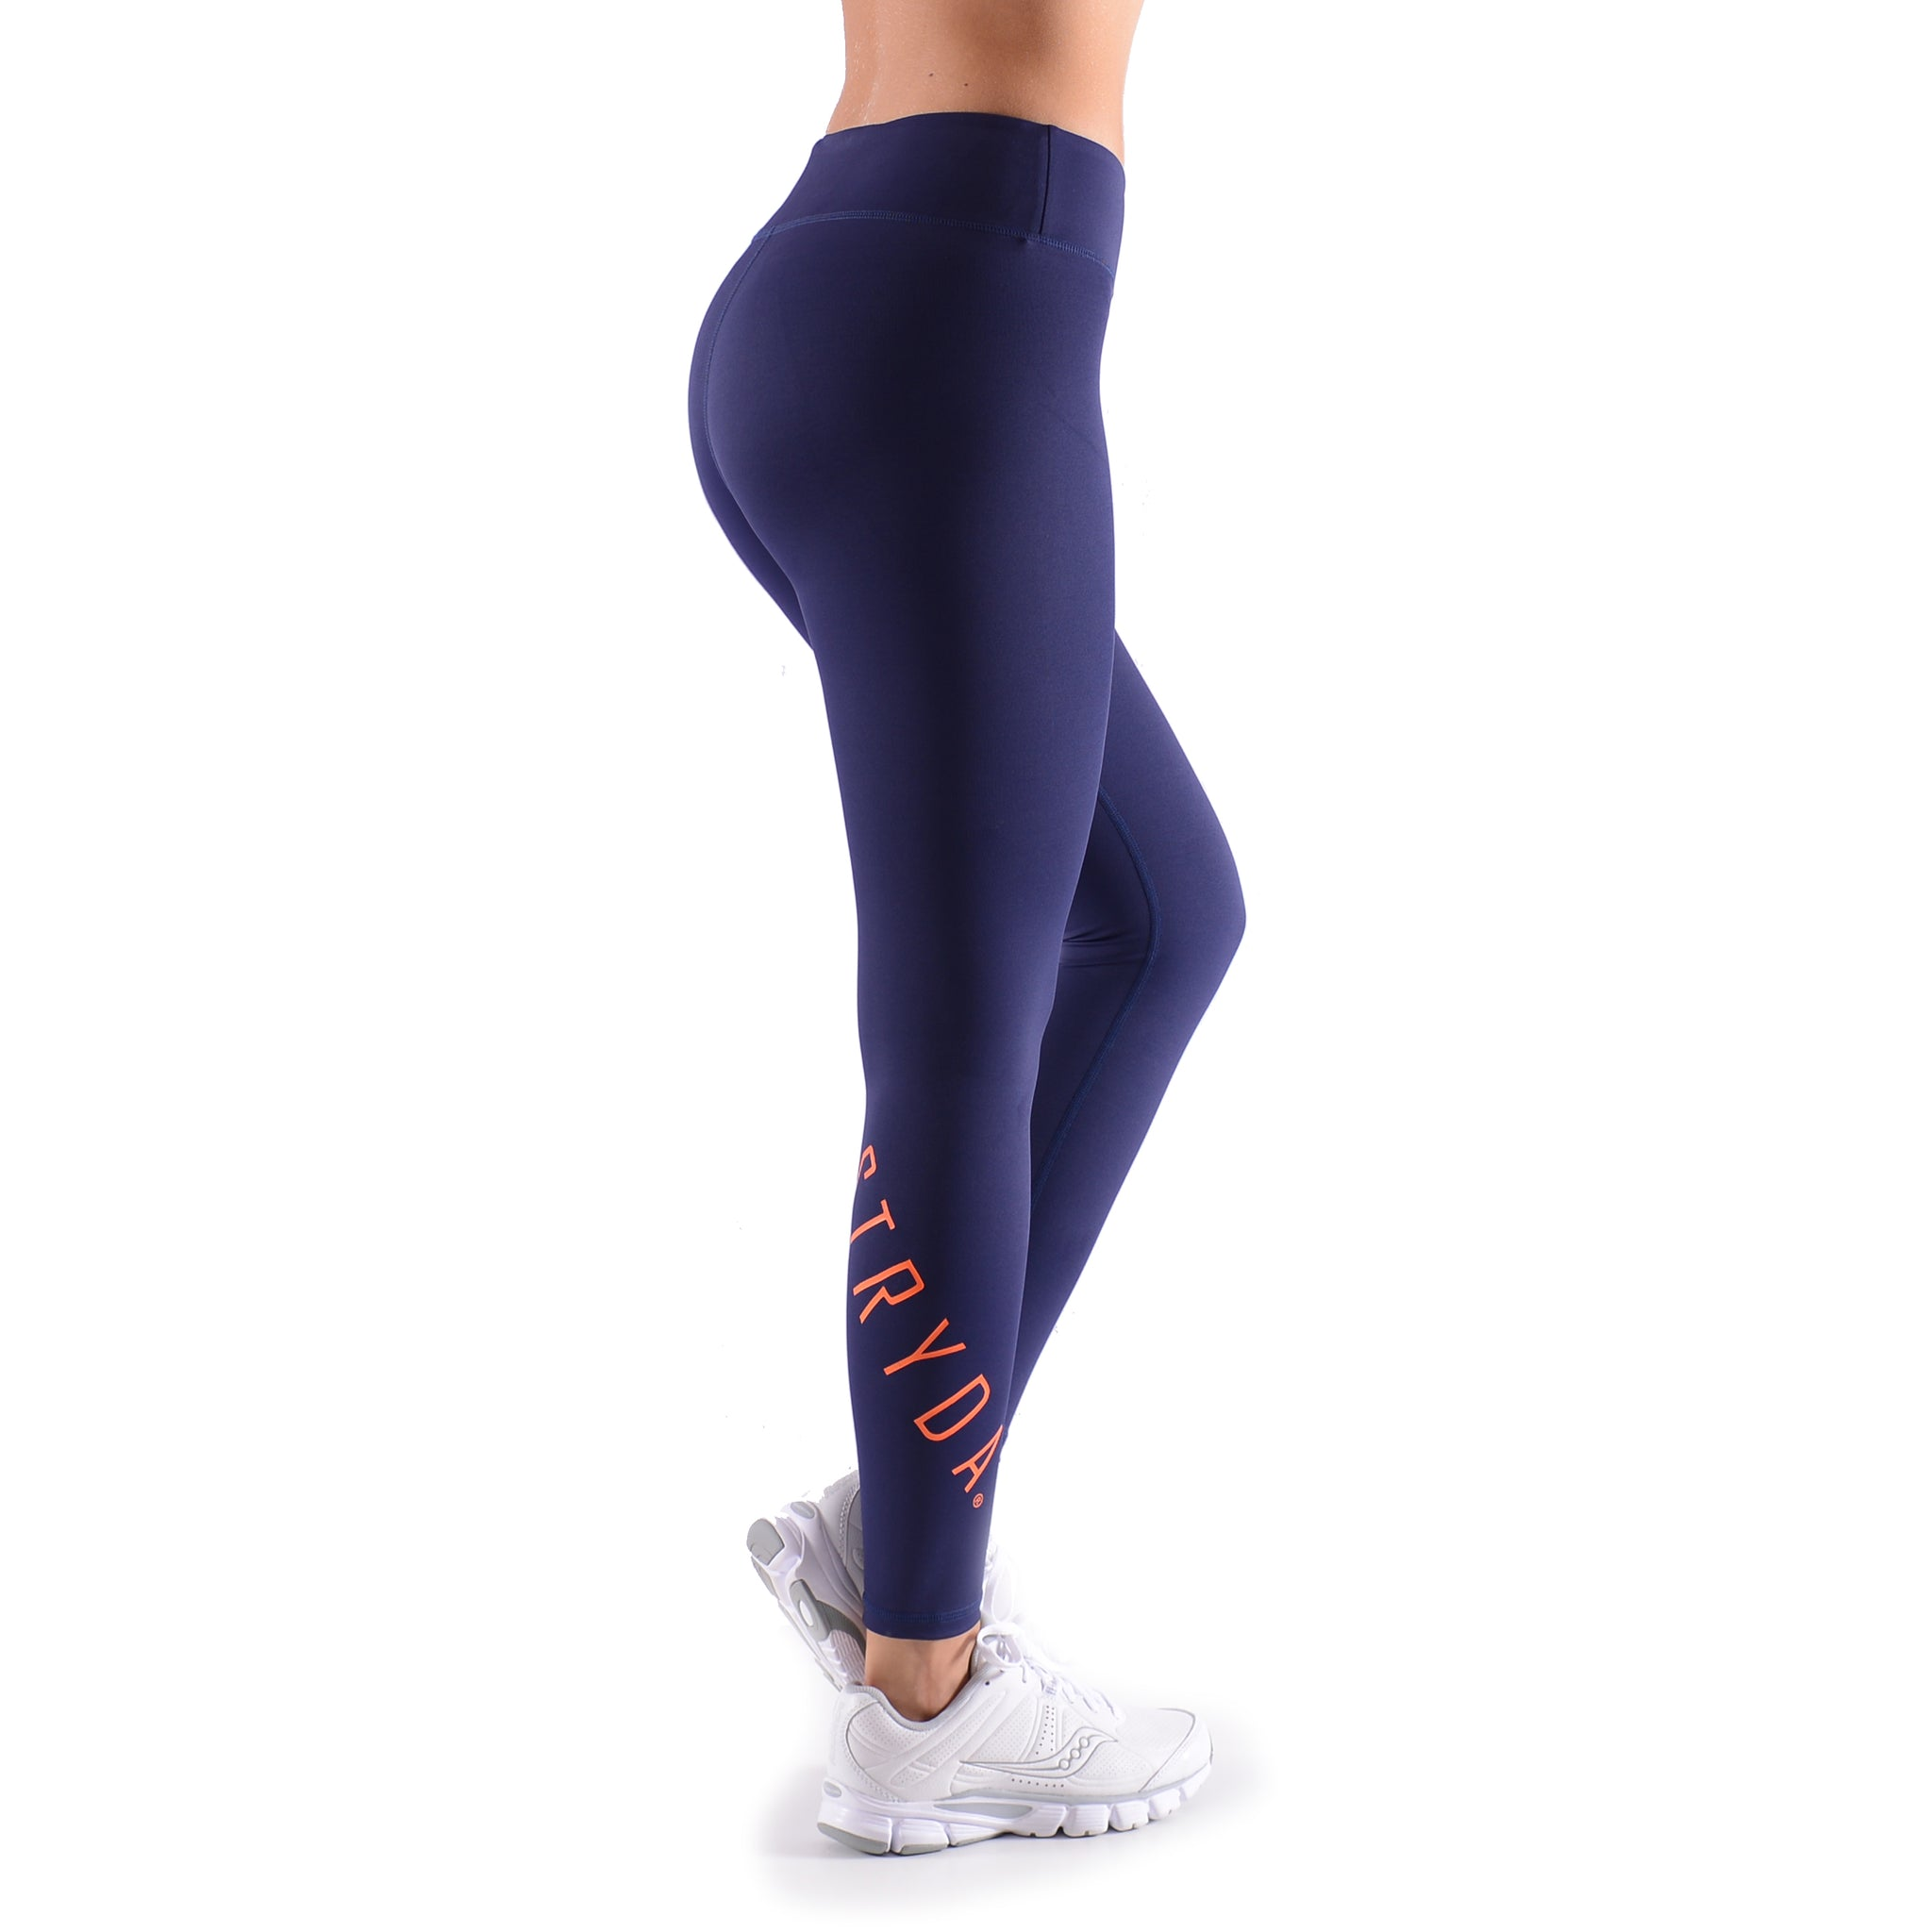 ORANGE PANTHER Ankle Biter Length Compression Tights